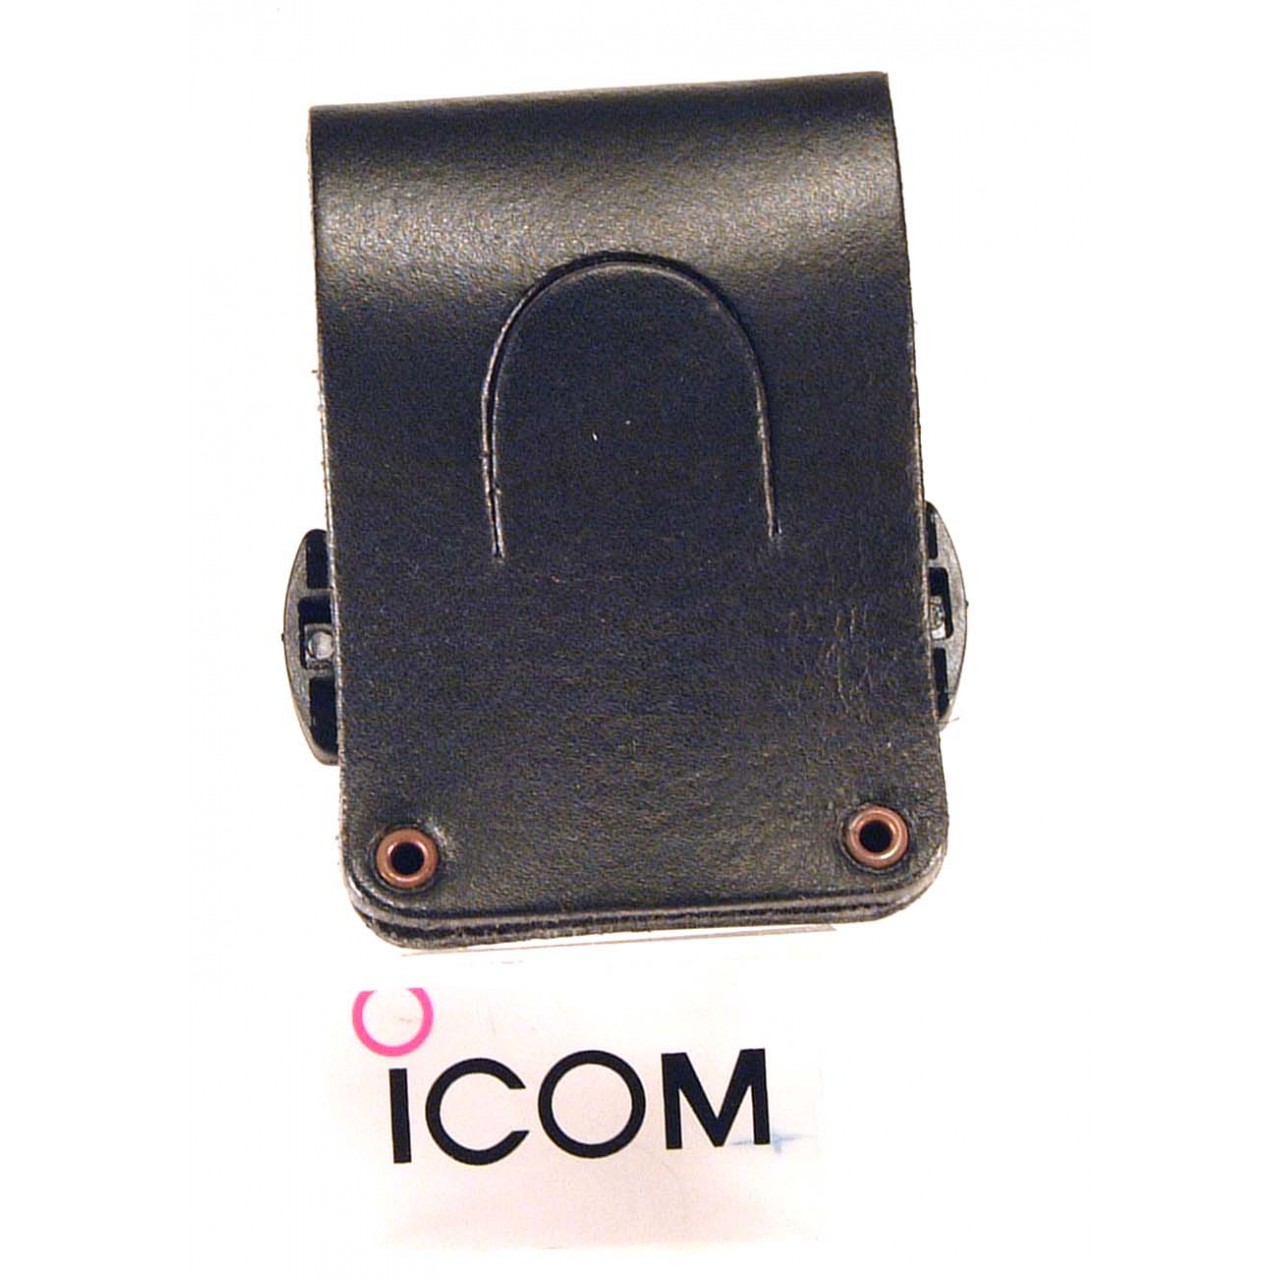 MB-ER Covers, fasteners and cradles - ICOM